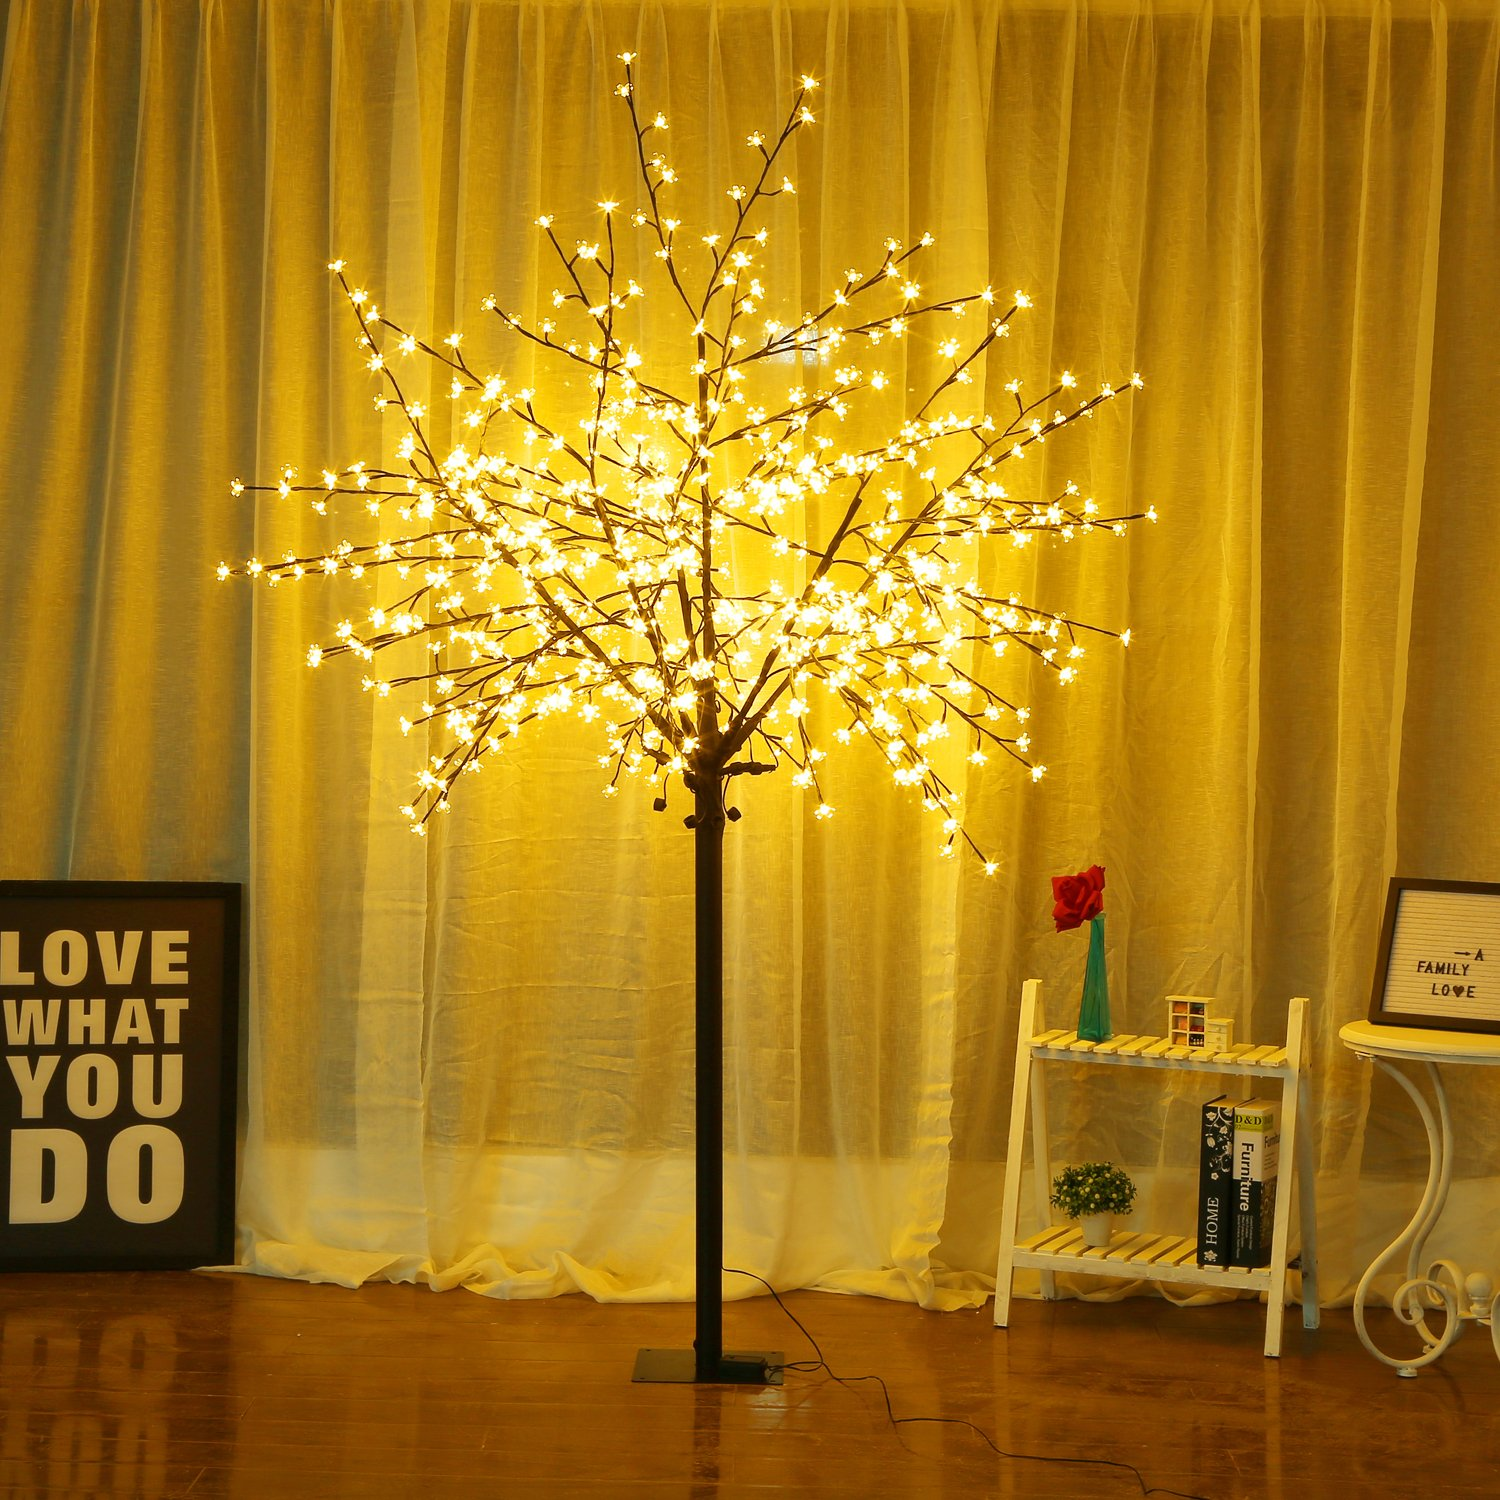 Bolylight Cherry Blossom Tree 8ft 600L LED Great Decoration for Festival/Party/Christmas Warm White